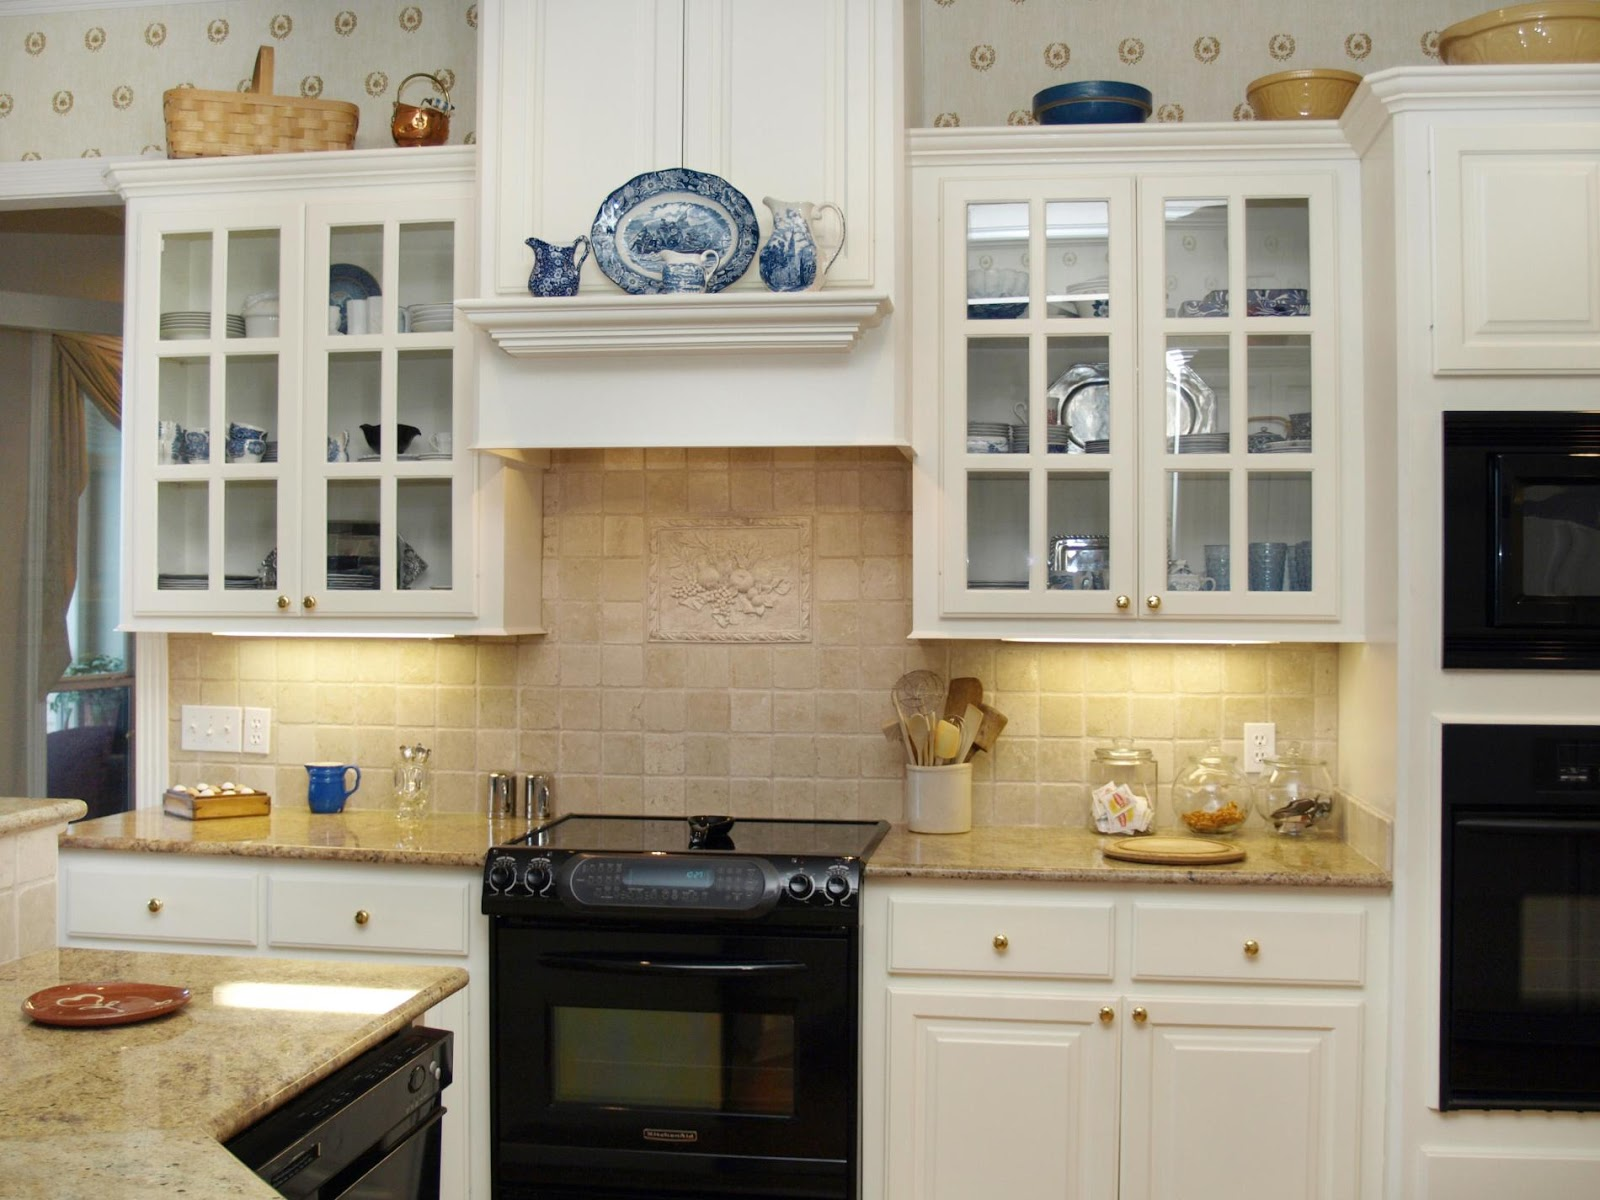 Kitchen shelves decoration dream house experience for New kitchen decorating ideas